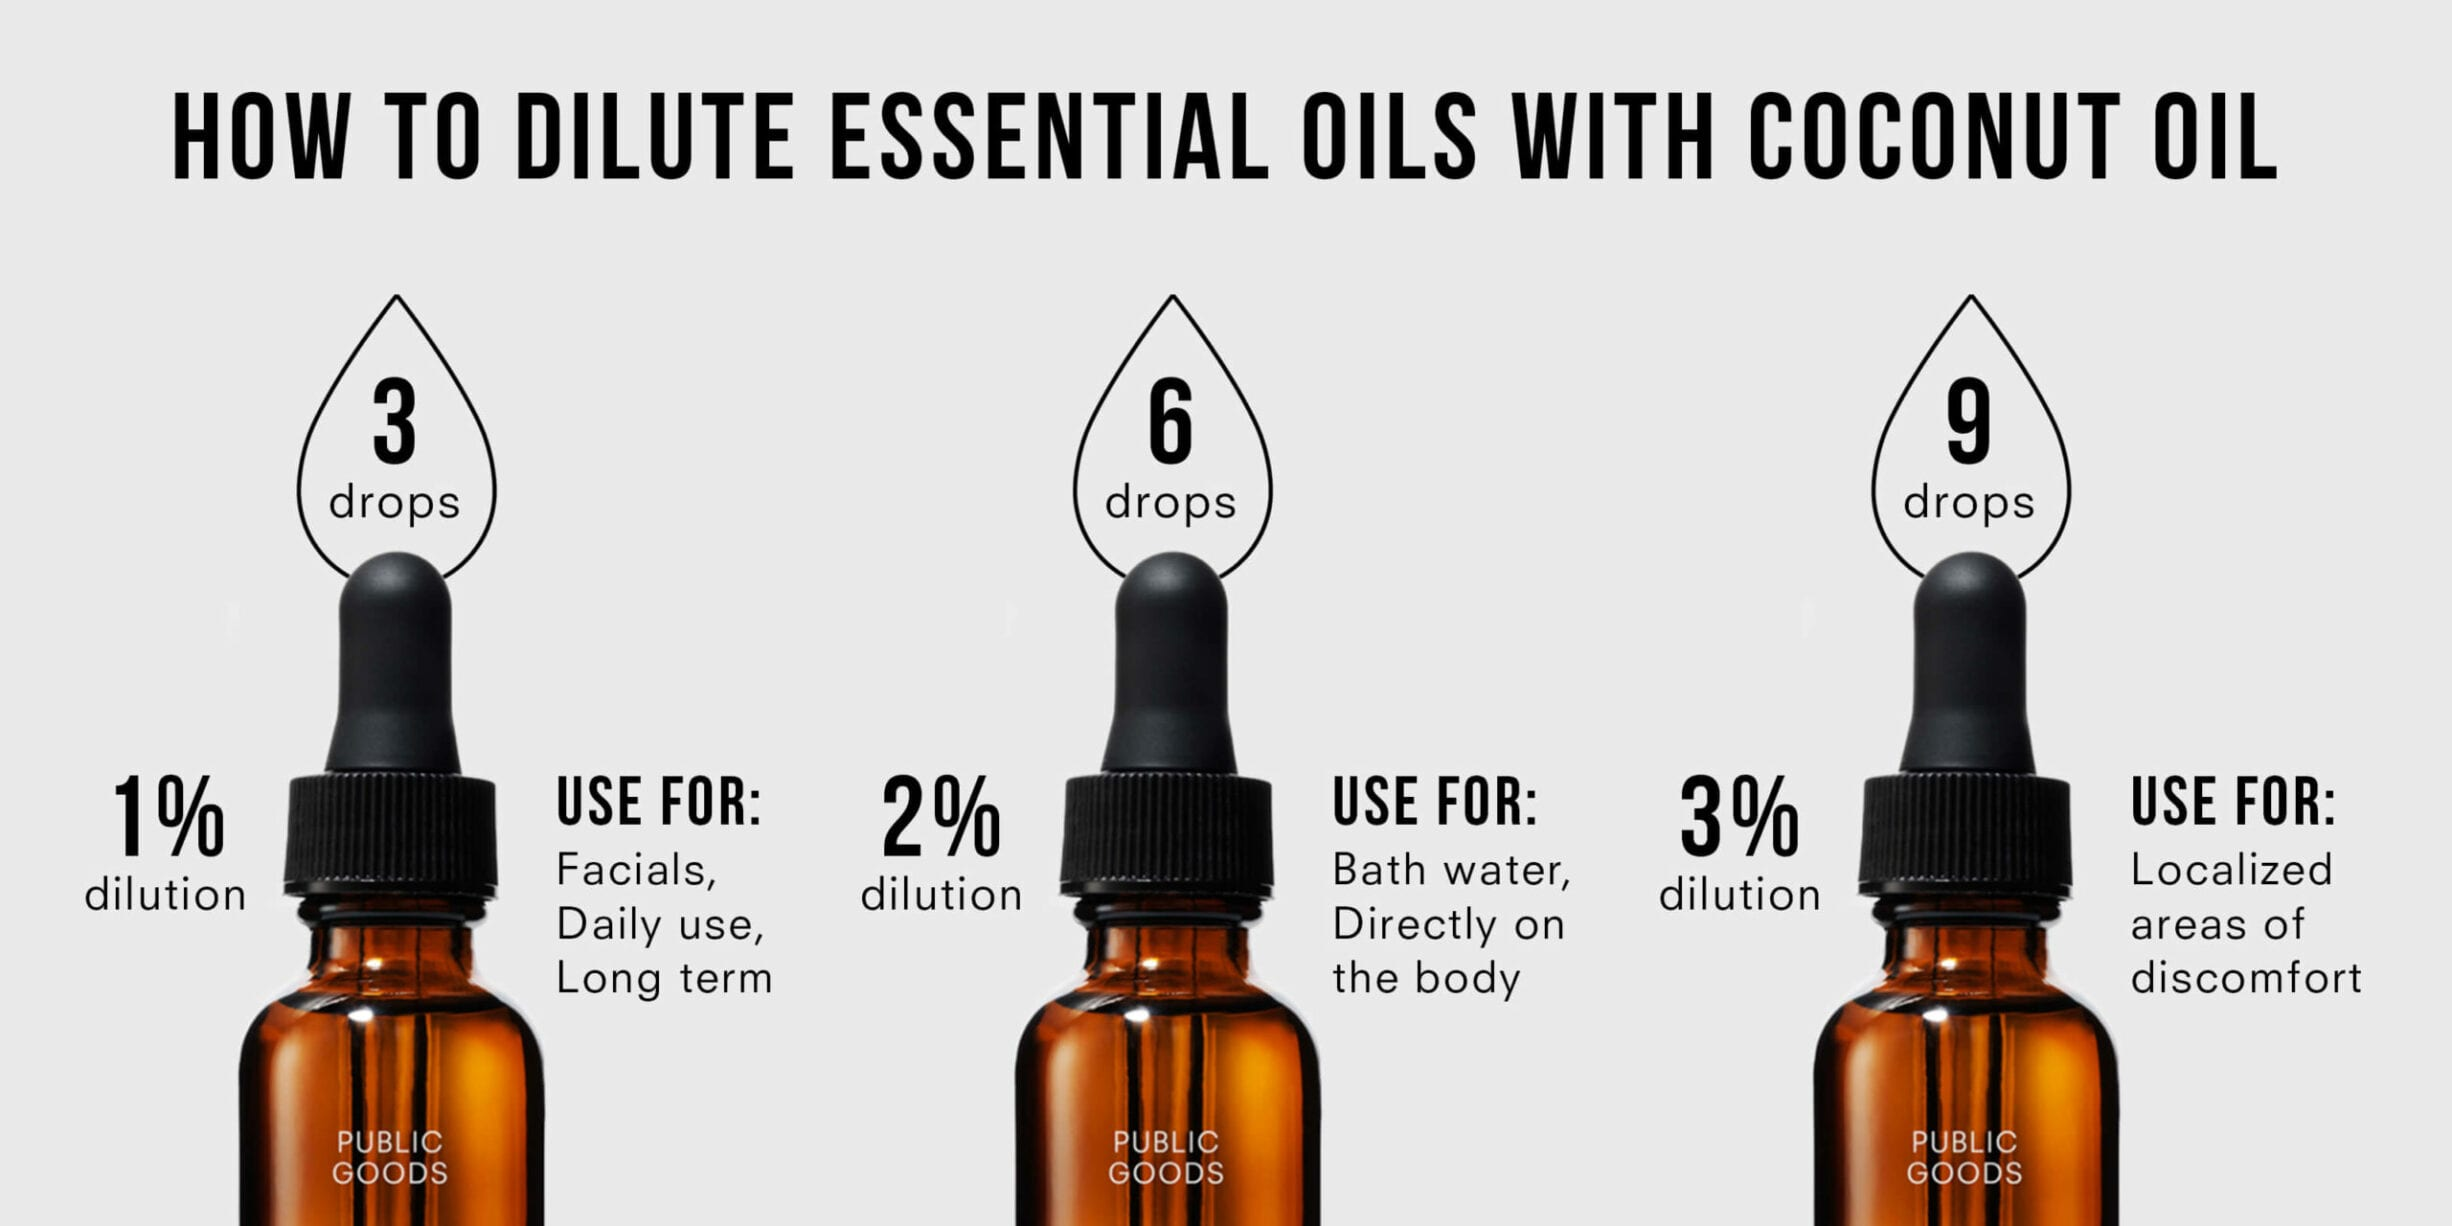 Dilute Essential Oils Coconut Oil Chart